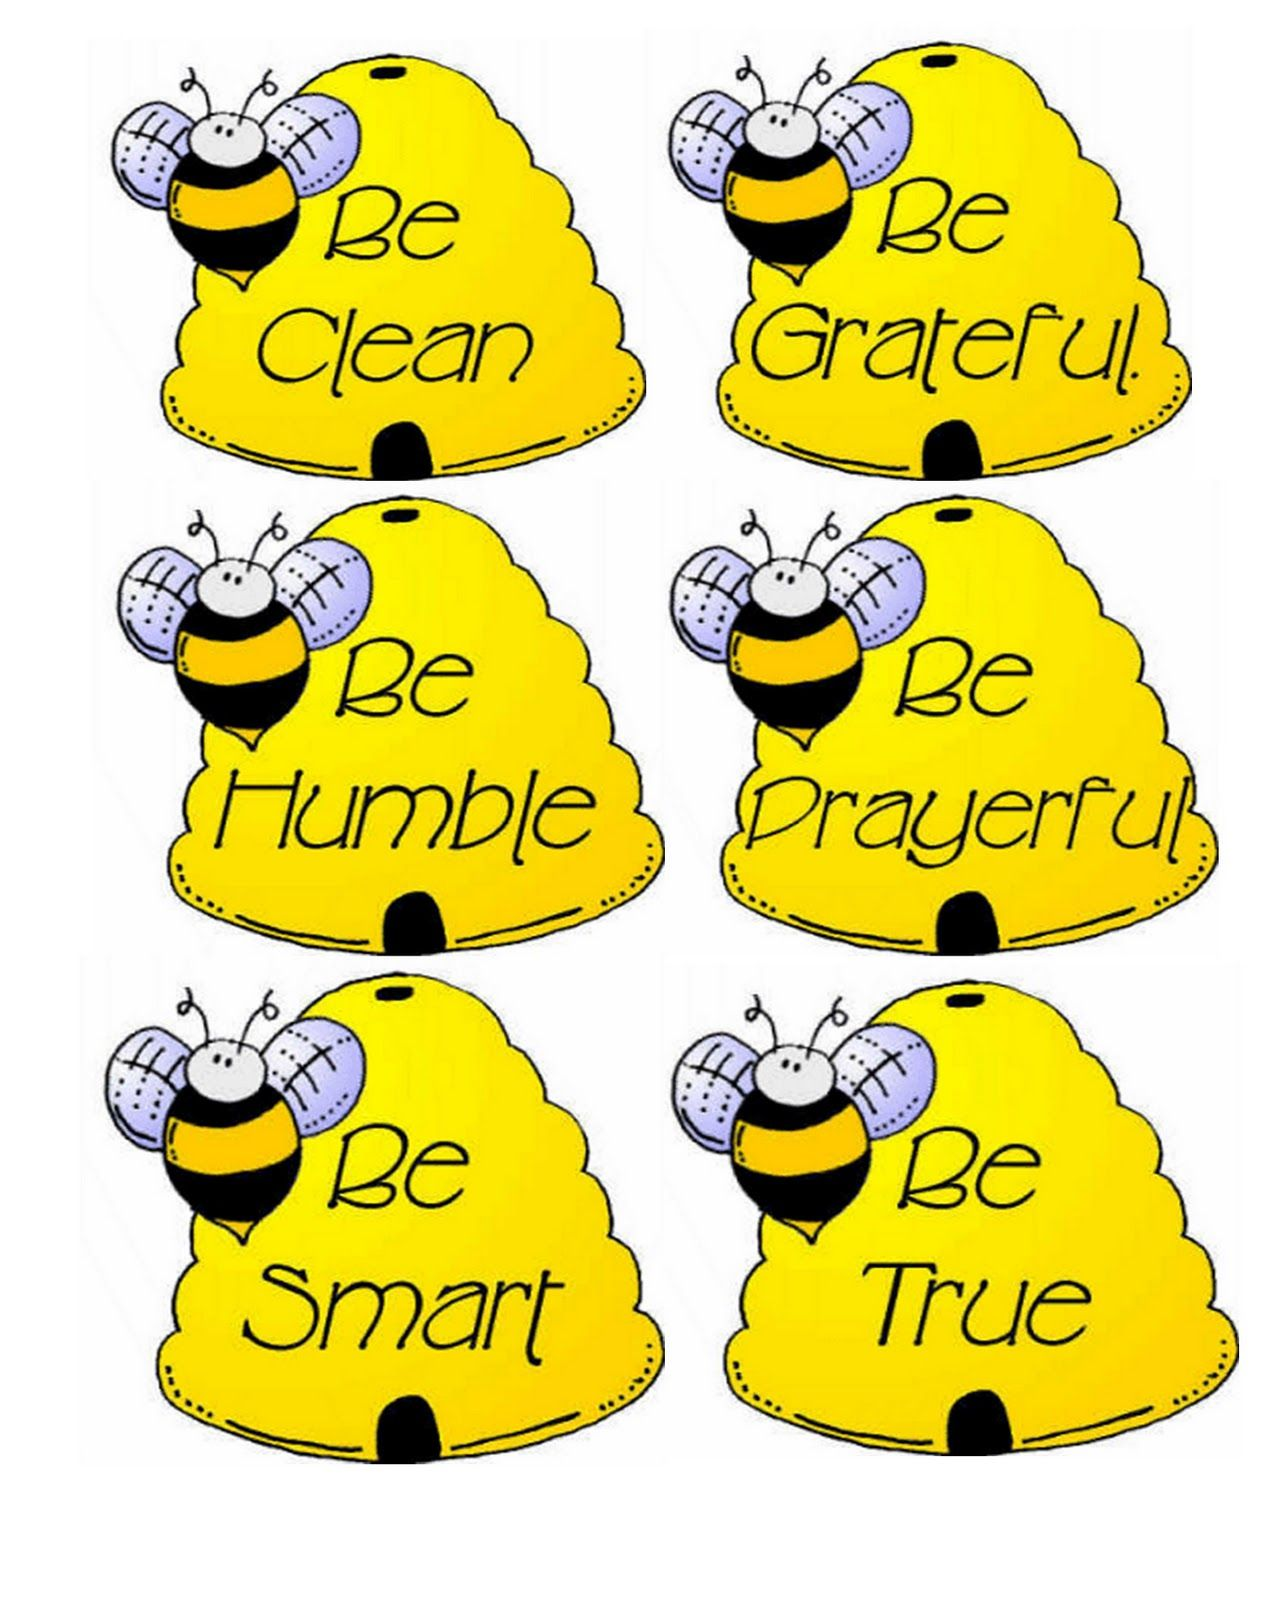 Bee Attitudes Sunday School Lesson | Bee Attitudes Activity Day